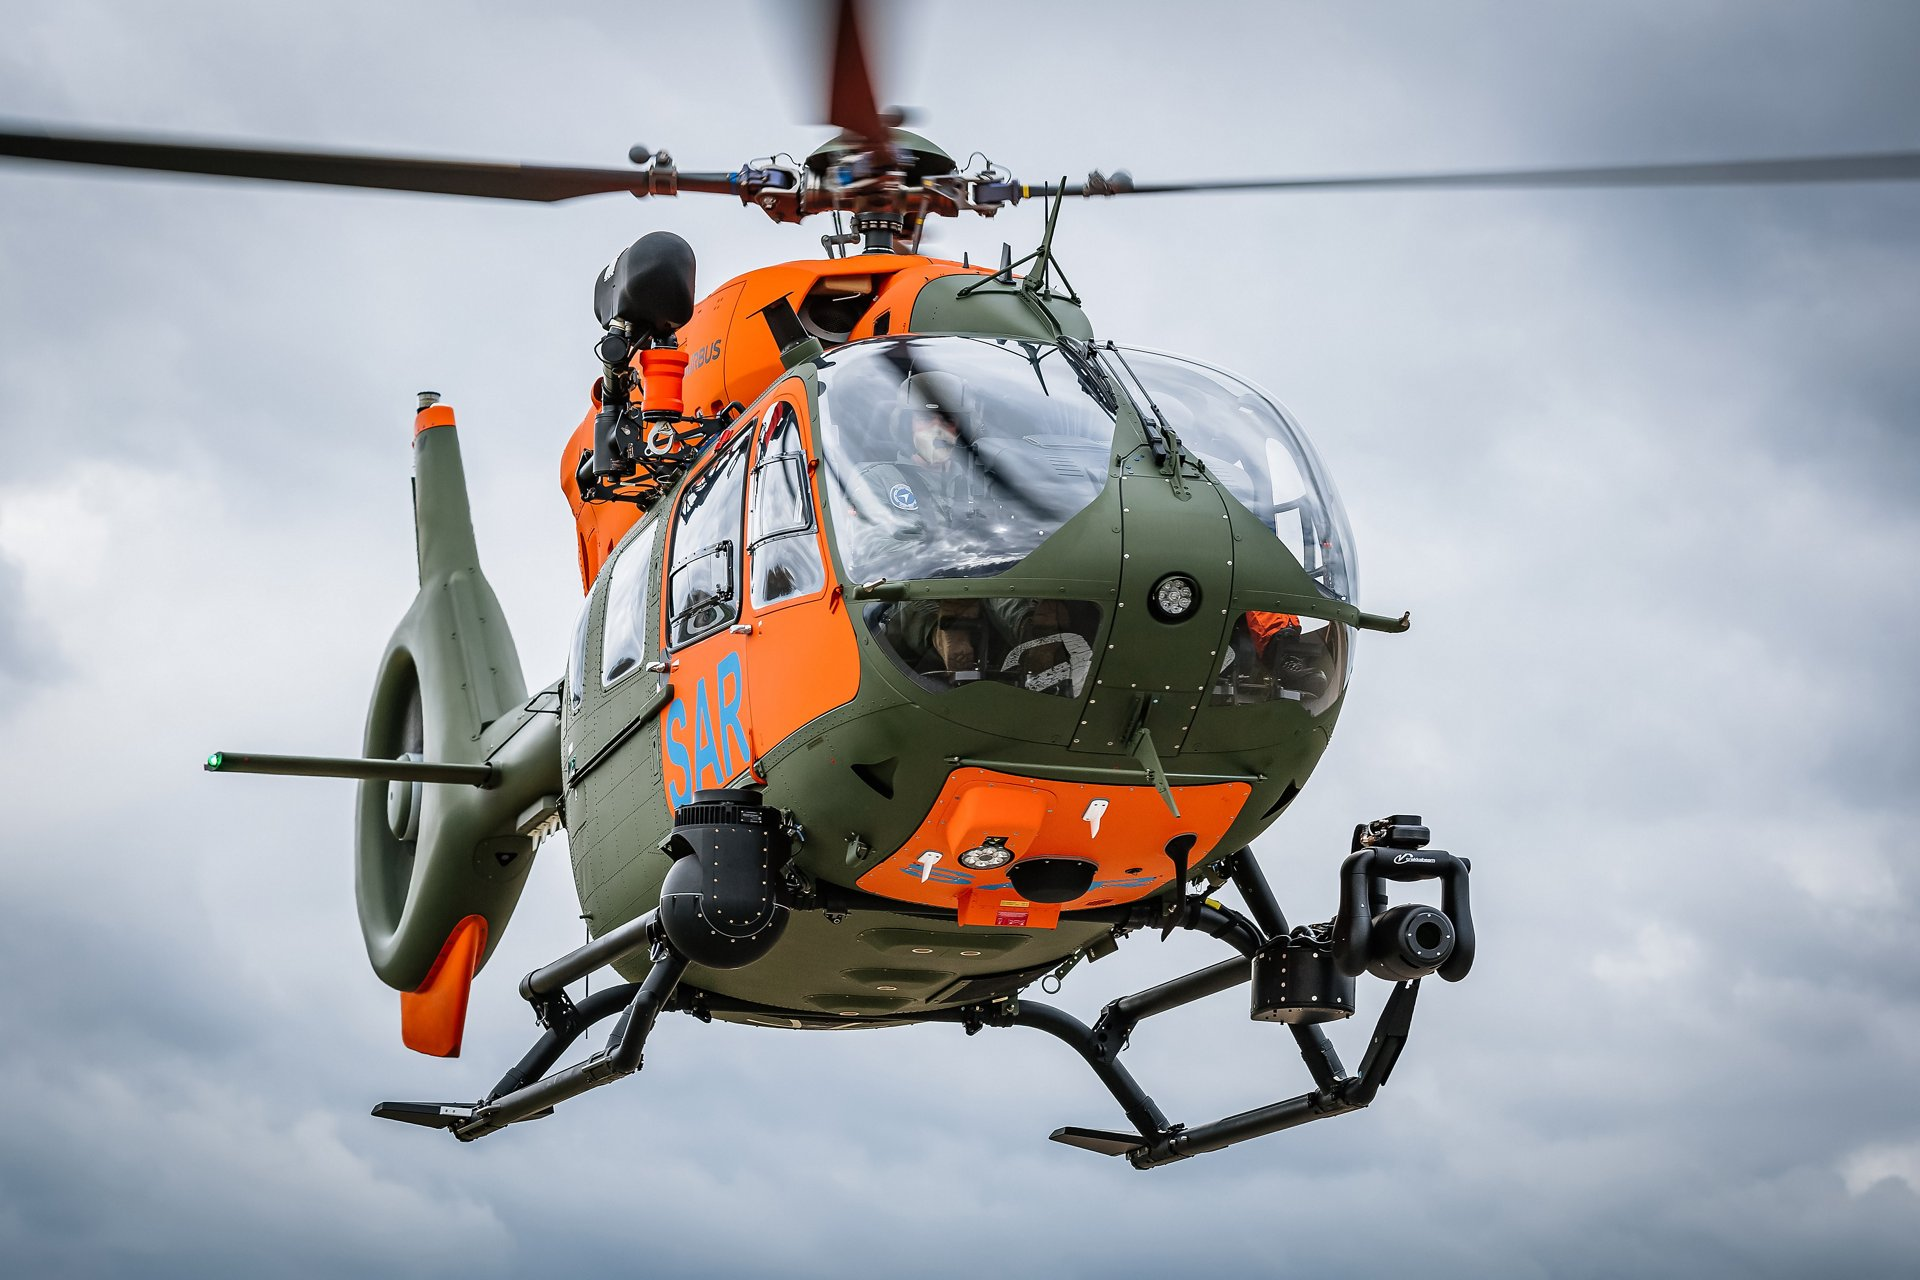 Airbus Helicopters has handed over the seventh and last H145 for the search and rescue (SAR) service of the Bundeswehr to the Federal Office of Bundeswehr Equipment, Information Technology and In-Service Support (BAAINBw) on time.